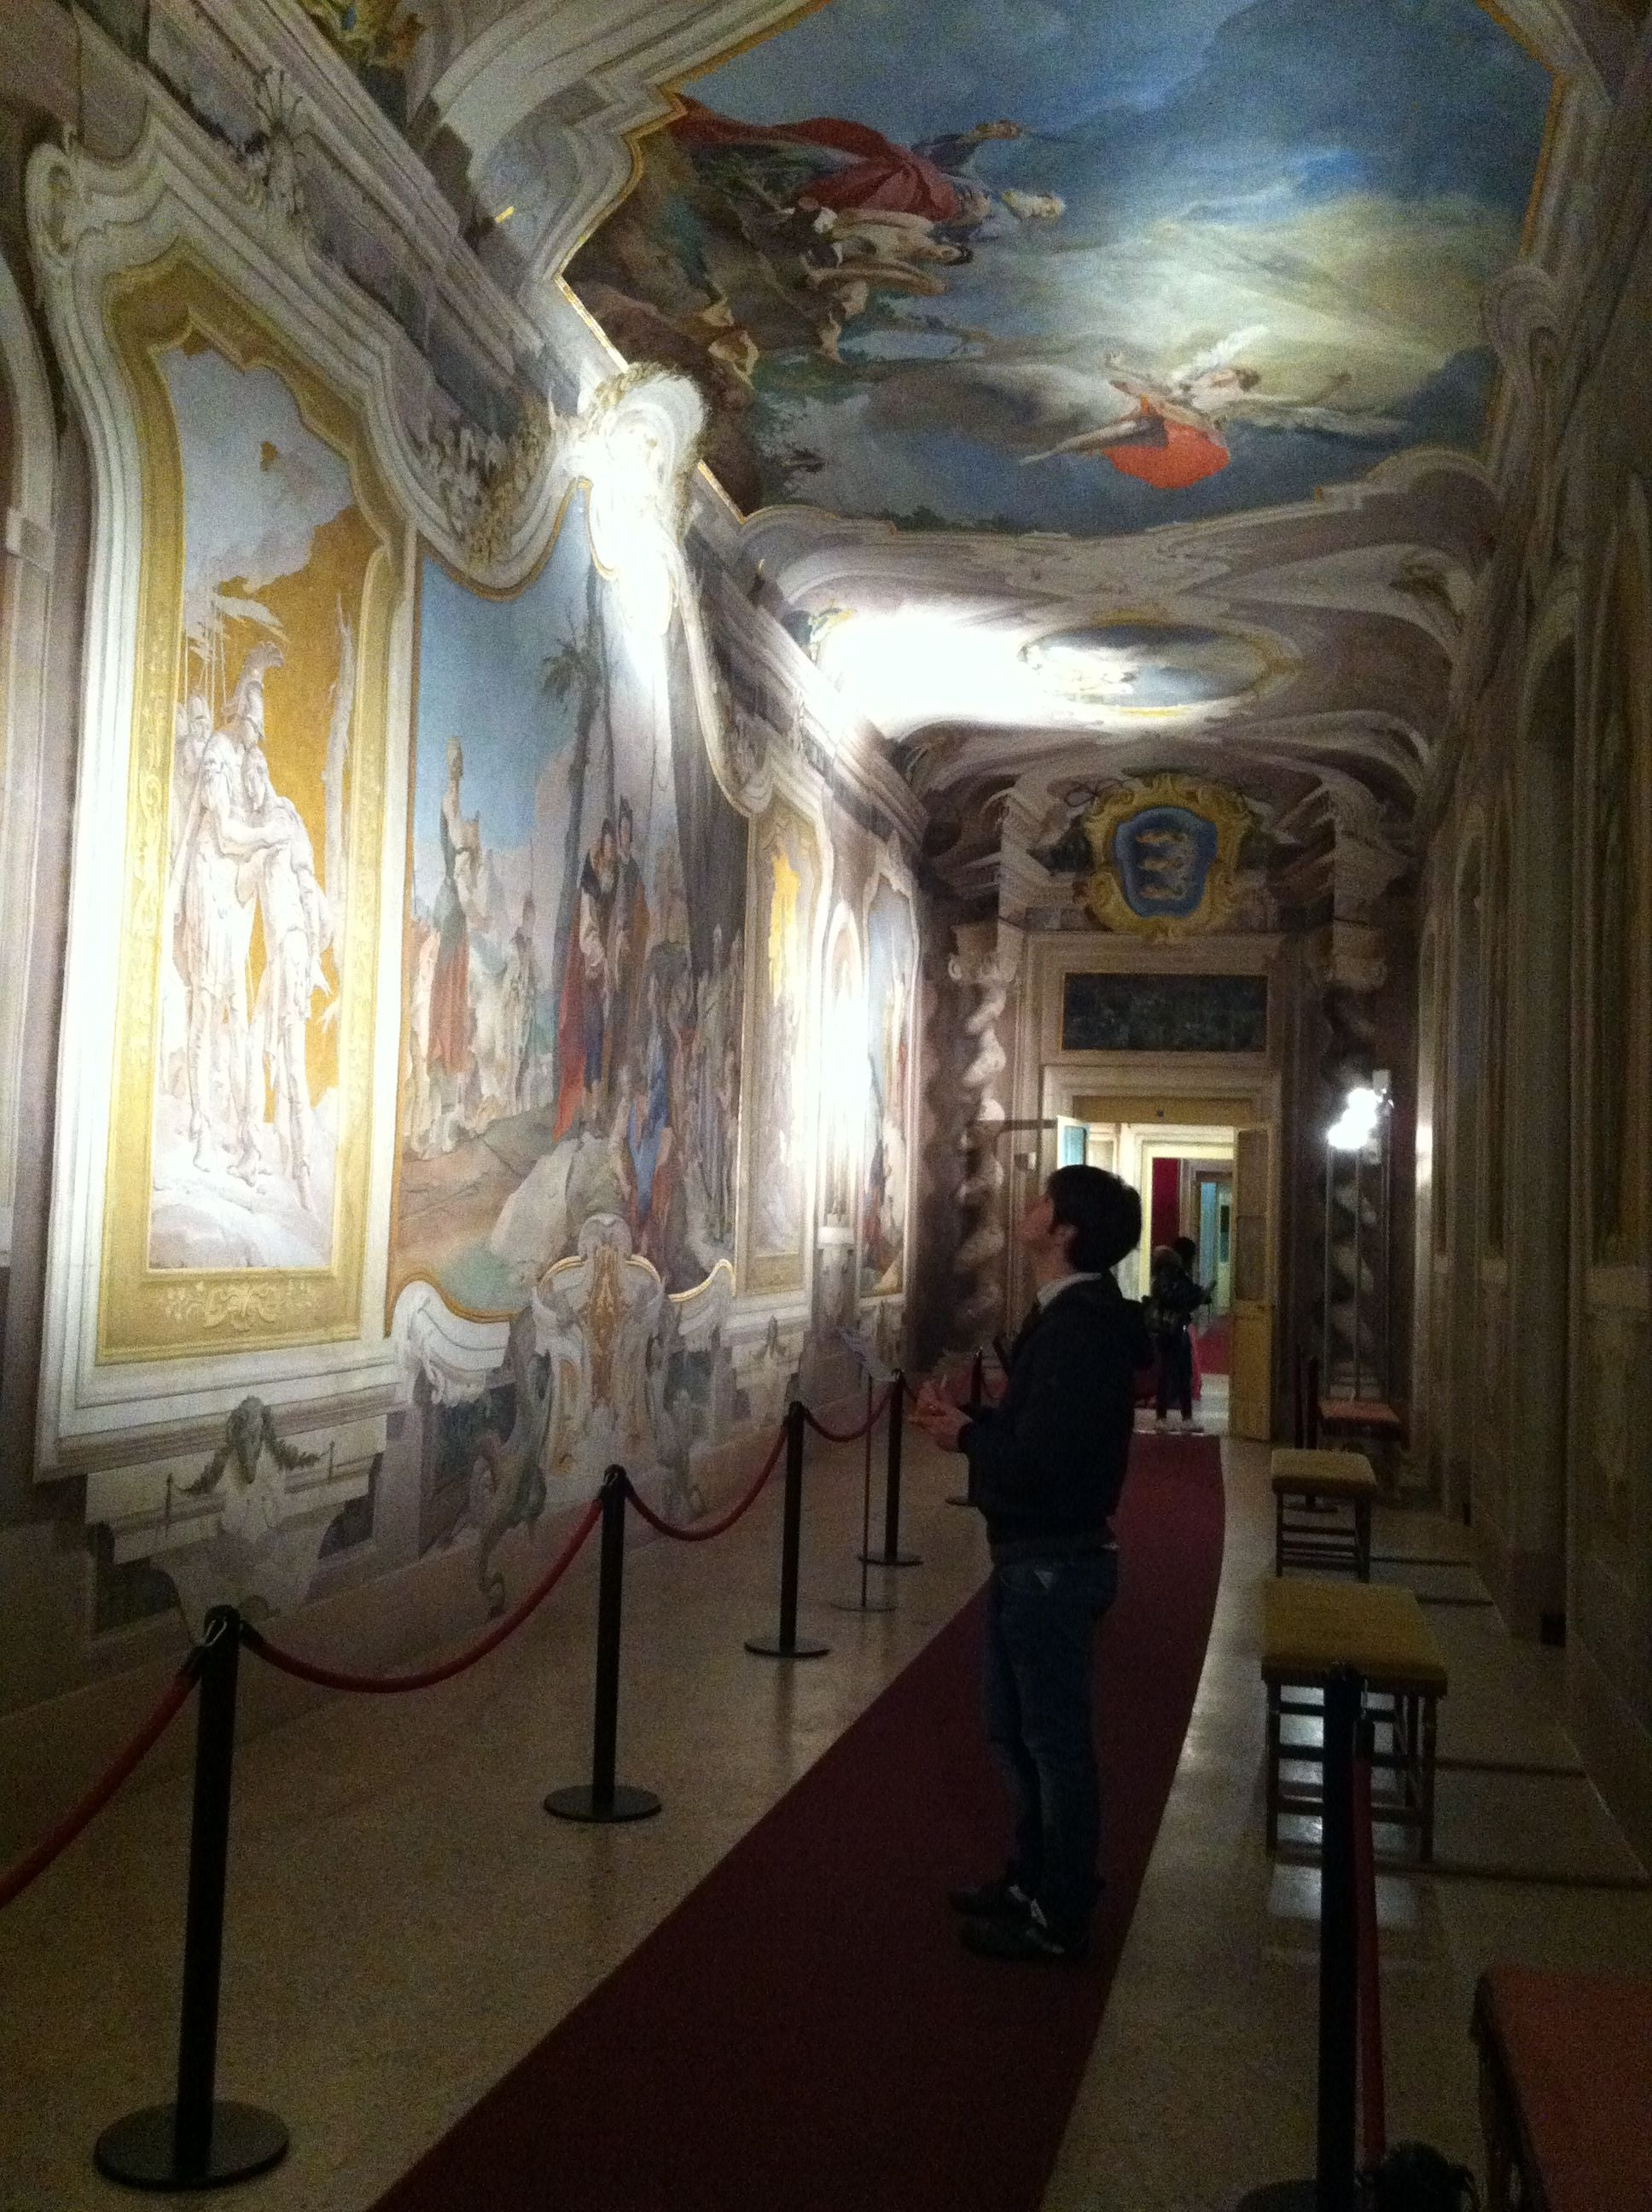 Diocesan Museum and the Tiepolo Galleria